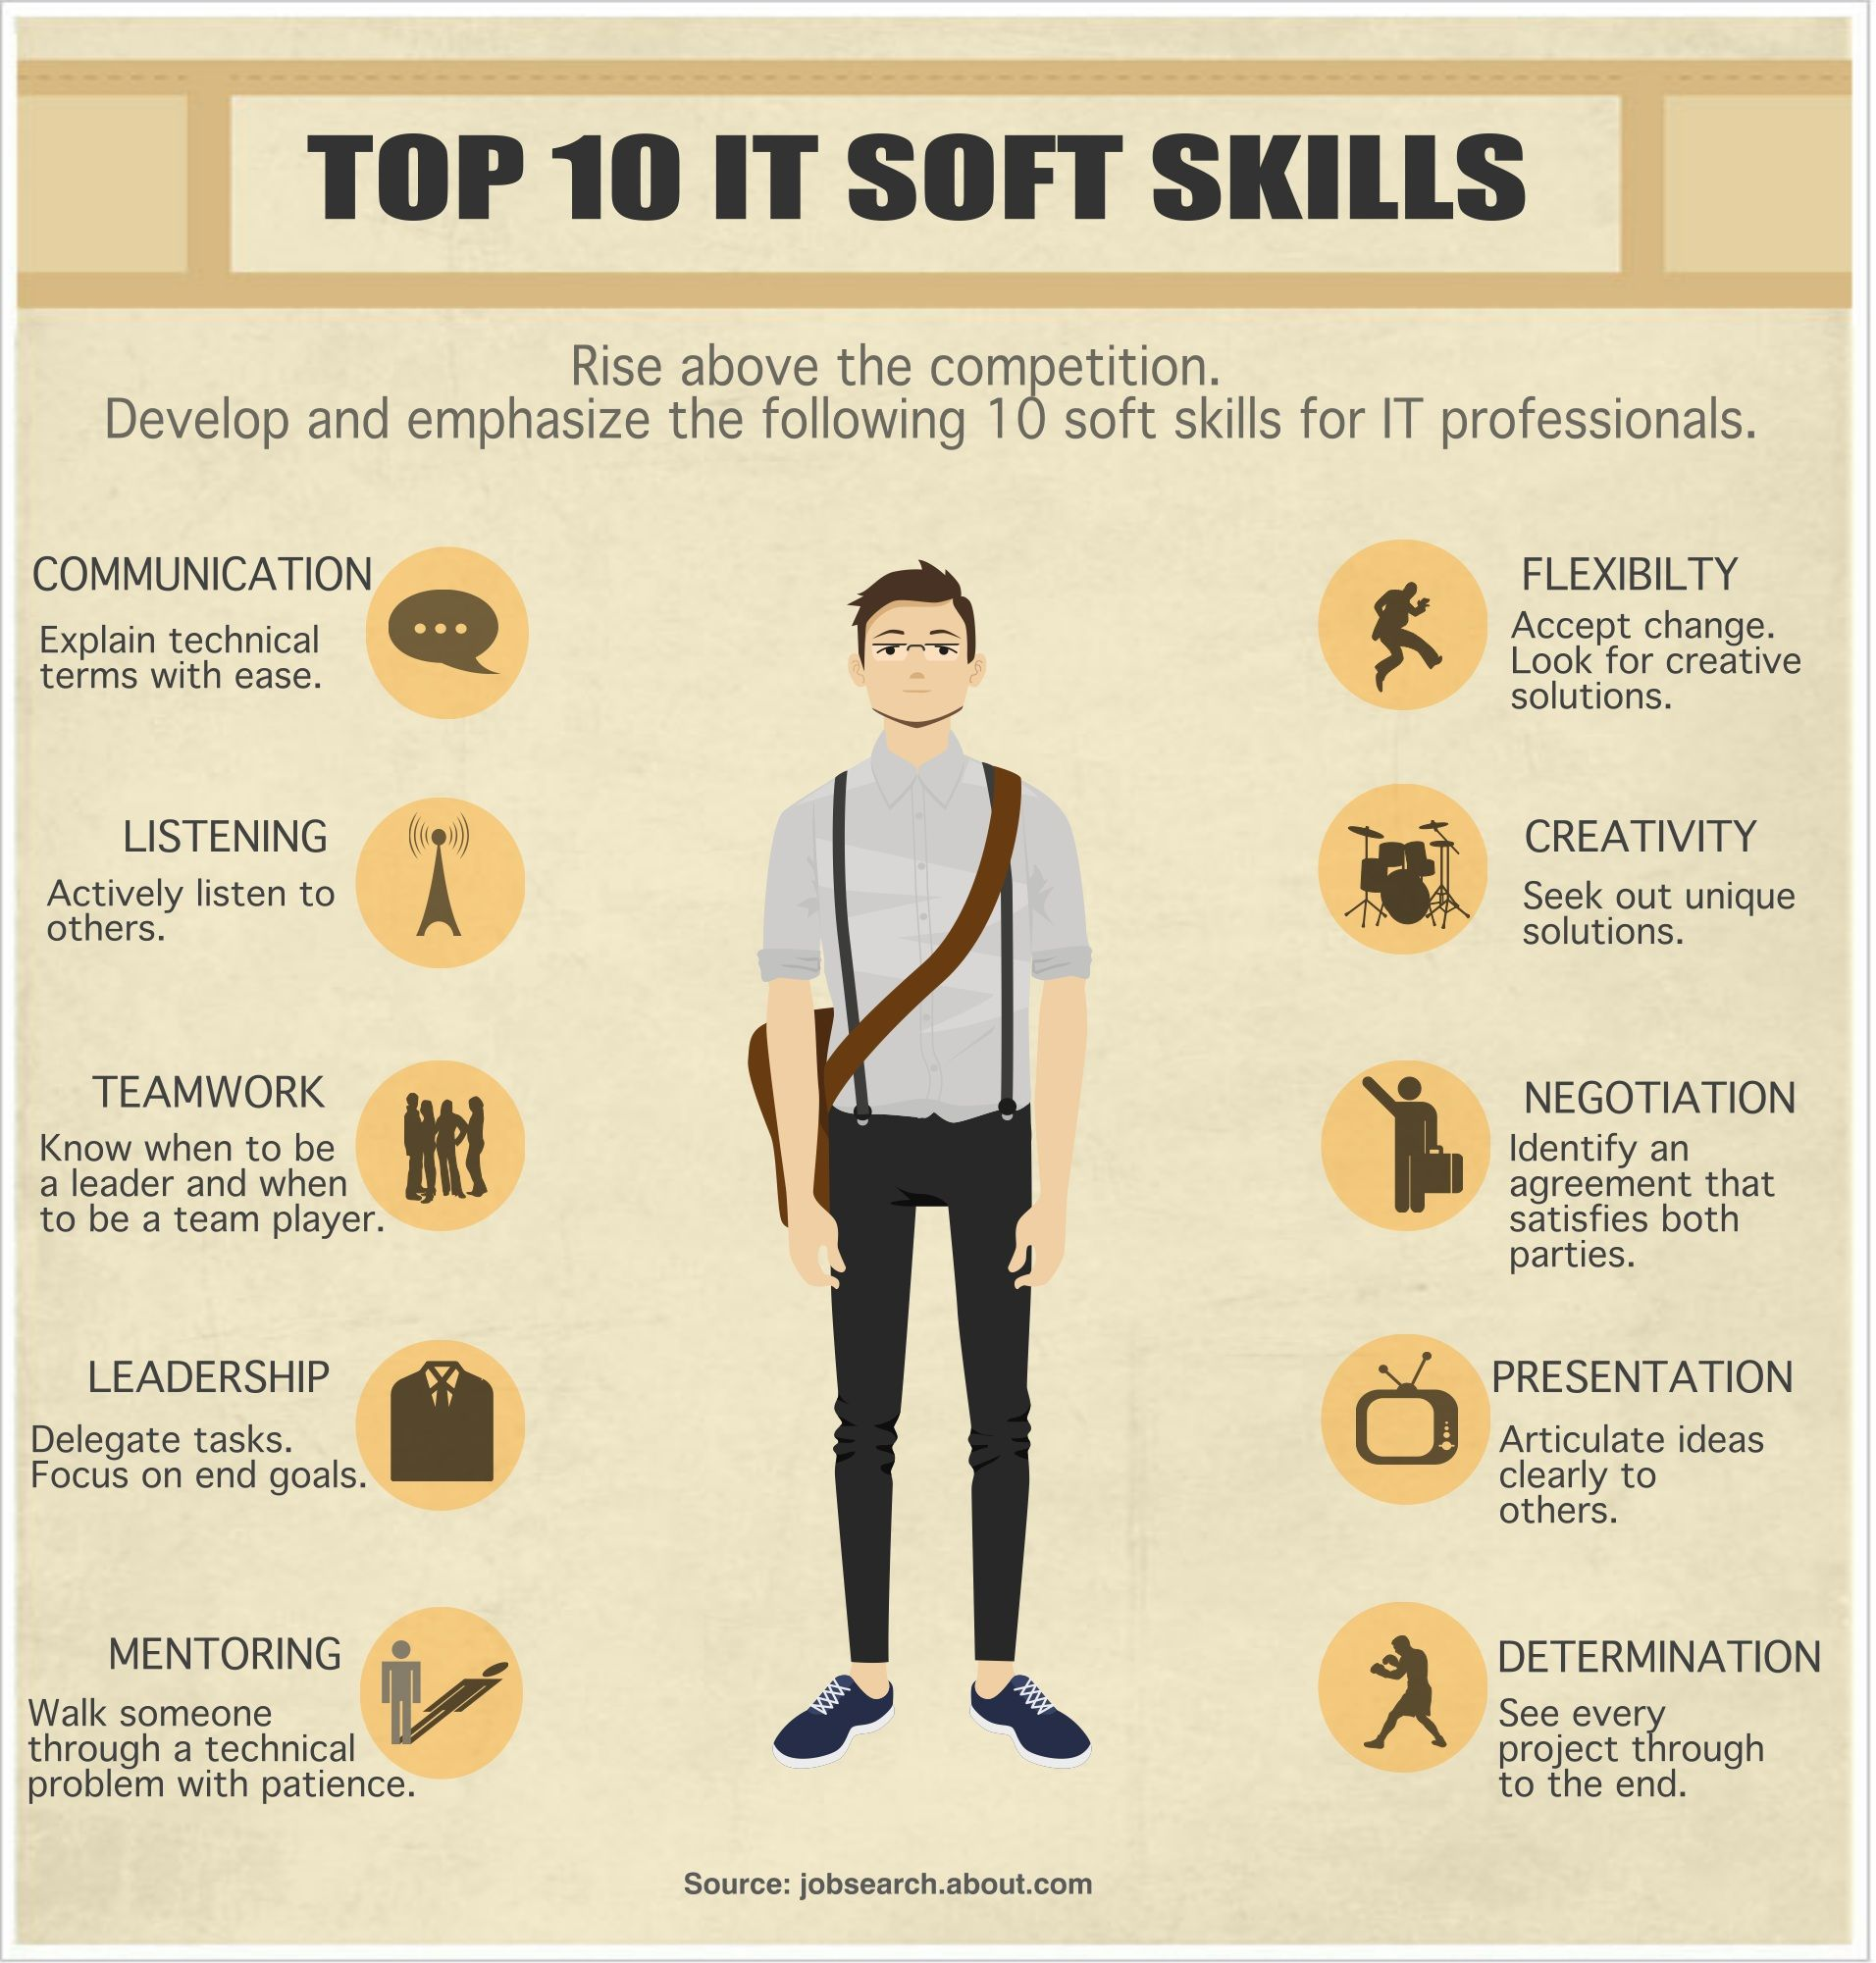 Top 10 It Soft Skills That Employers Look For